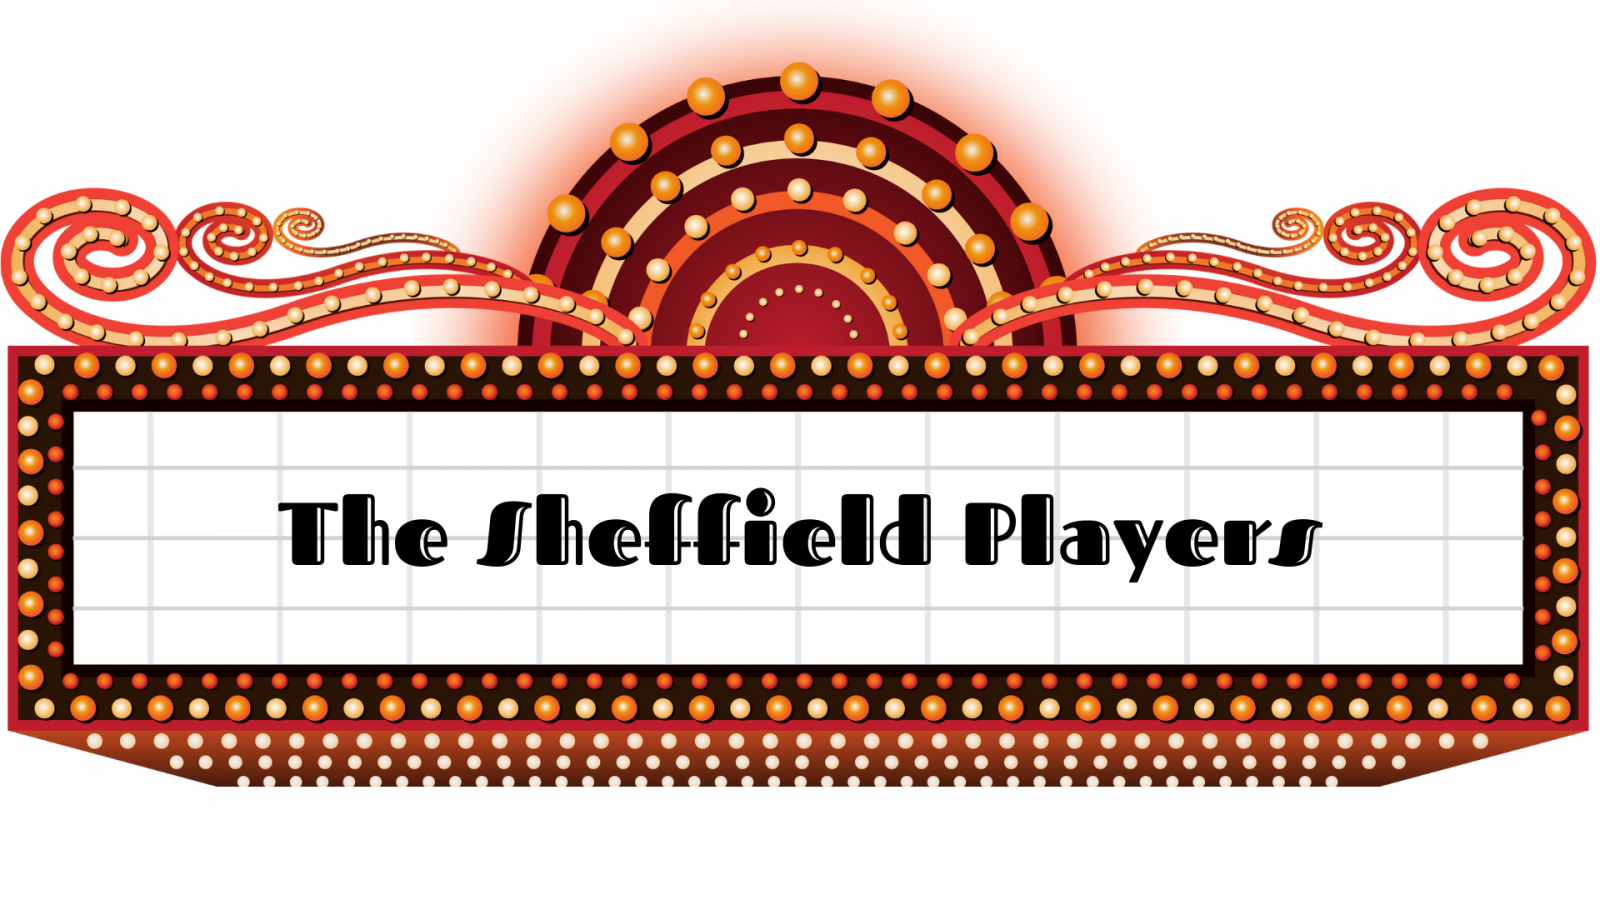 The Sheffield Players